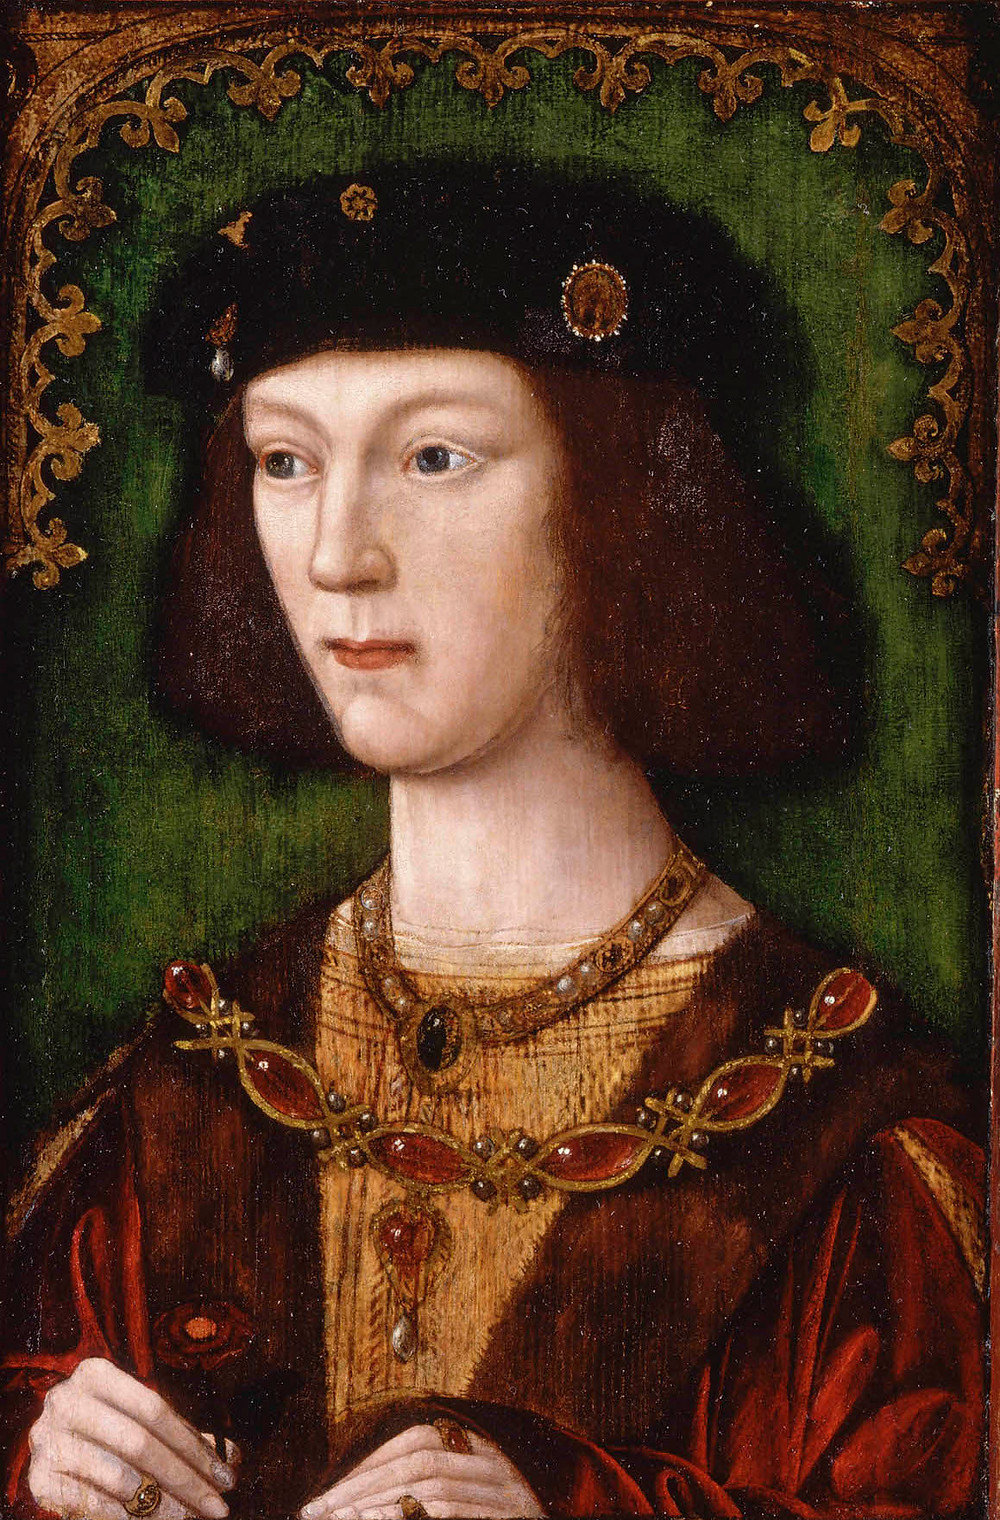 King Henry VIII as an eighteen year old in 1509 after his coronation